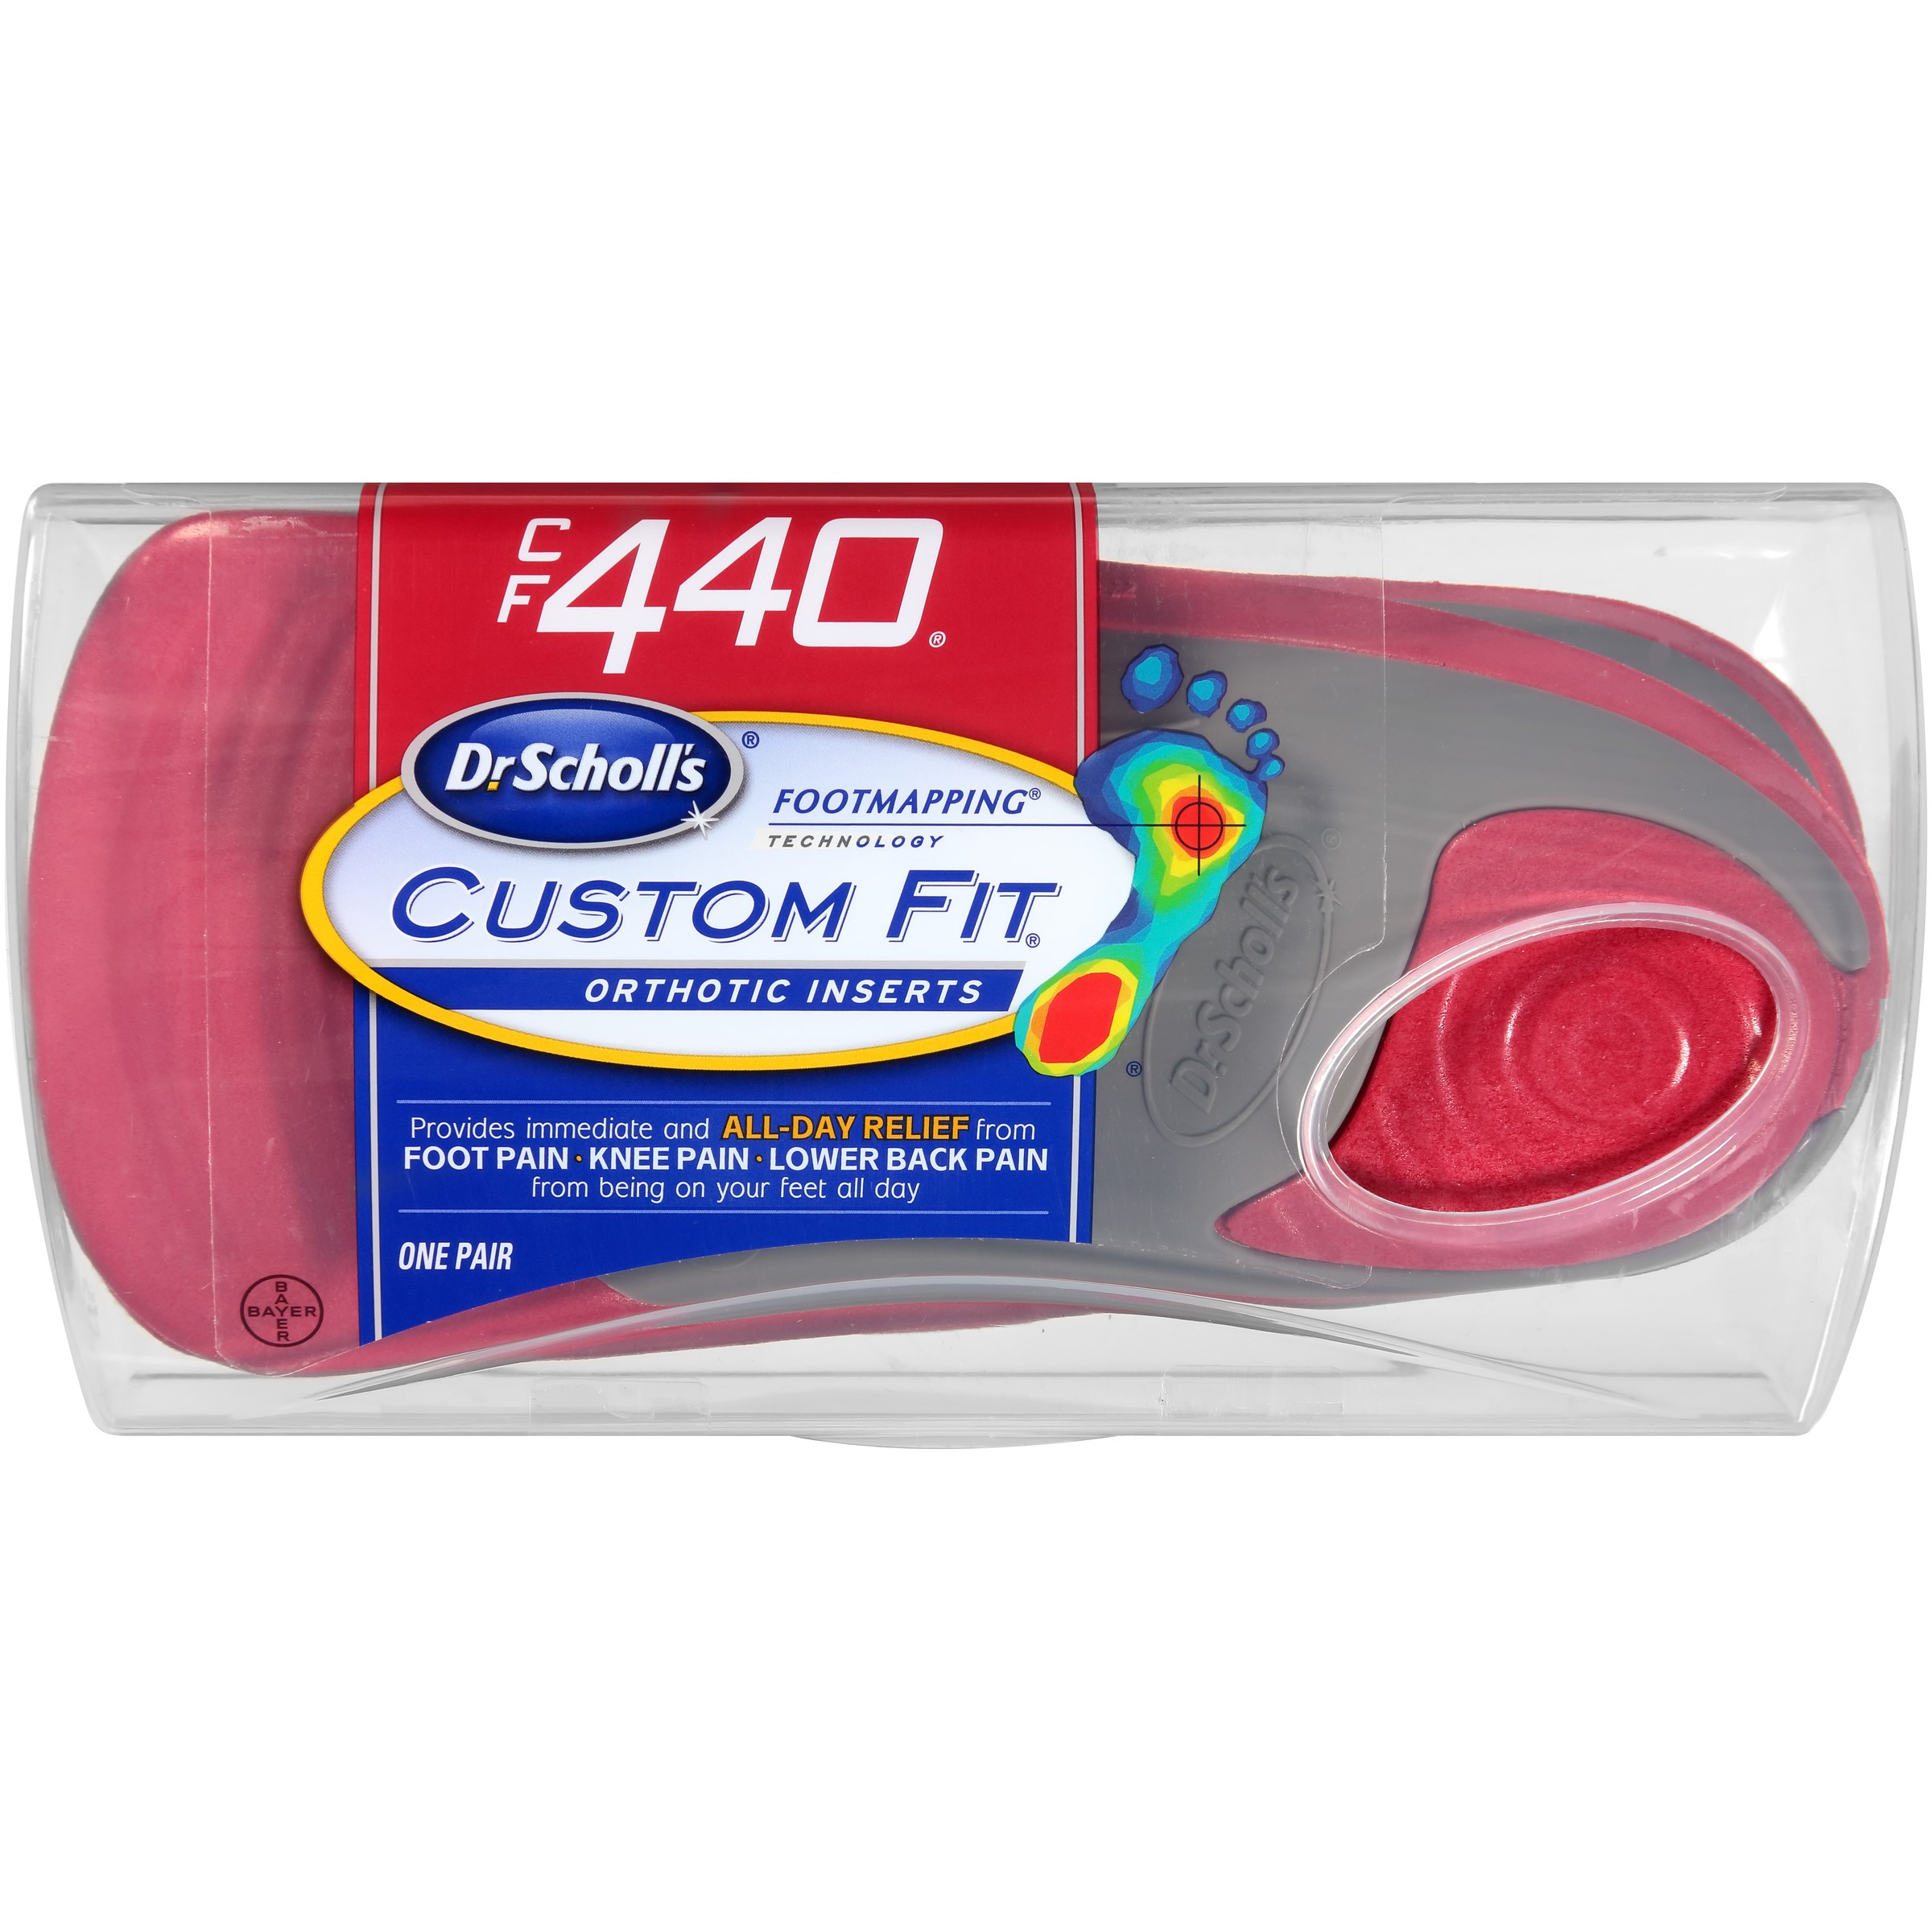 Dr. Scholl's® Custom Fit® Orthotics CF440, 1 Pair